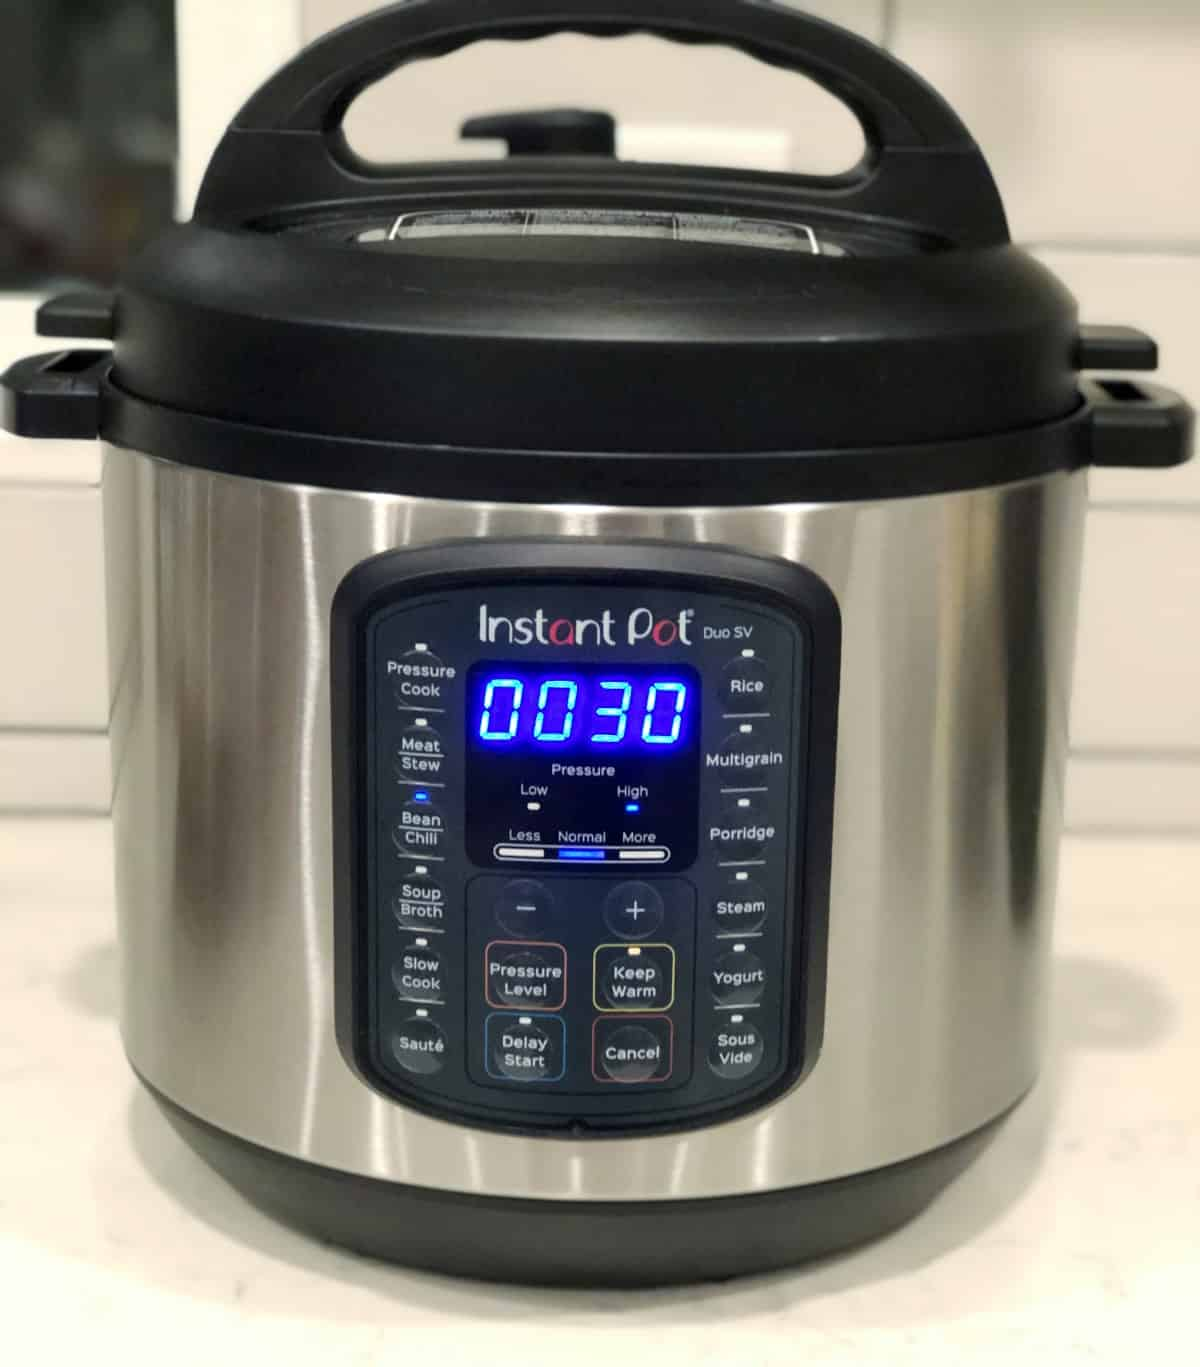 Cooking pinto beans for 30 minutes on HIGH pressure in InstantPot